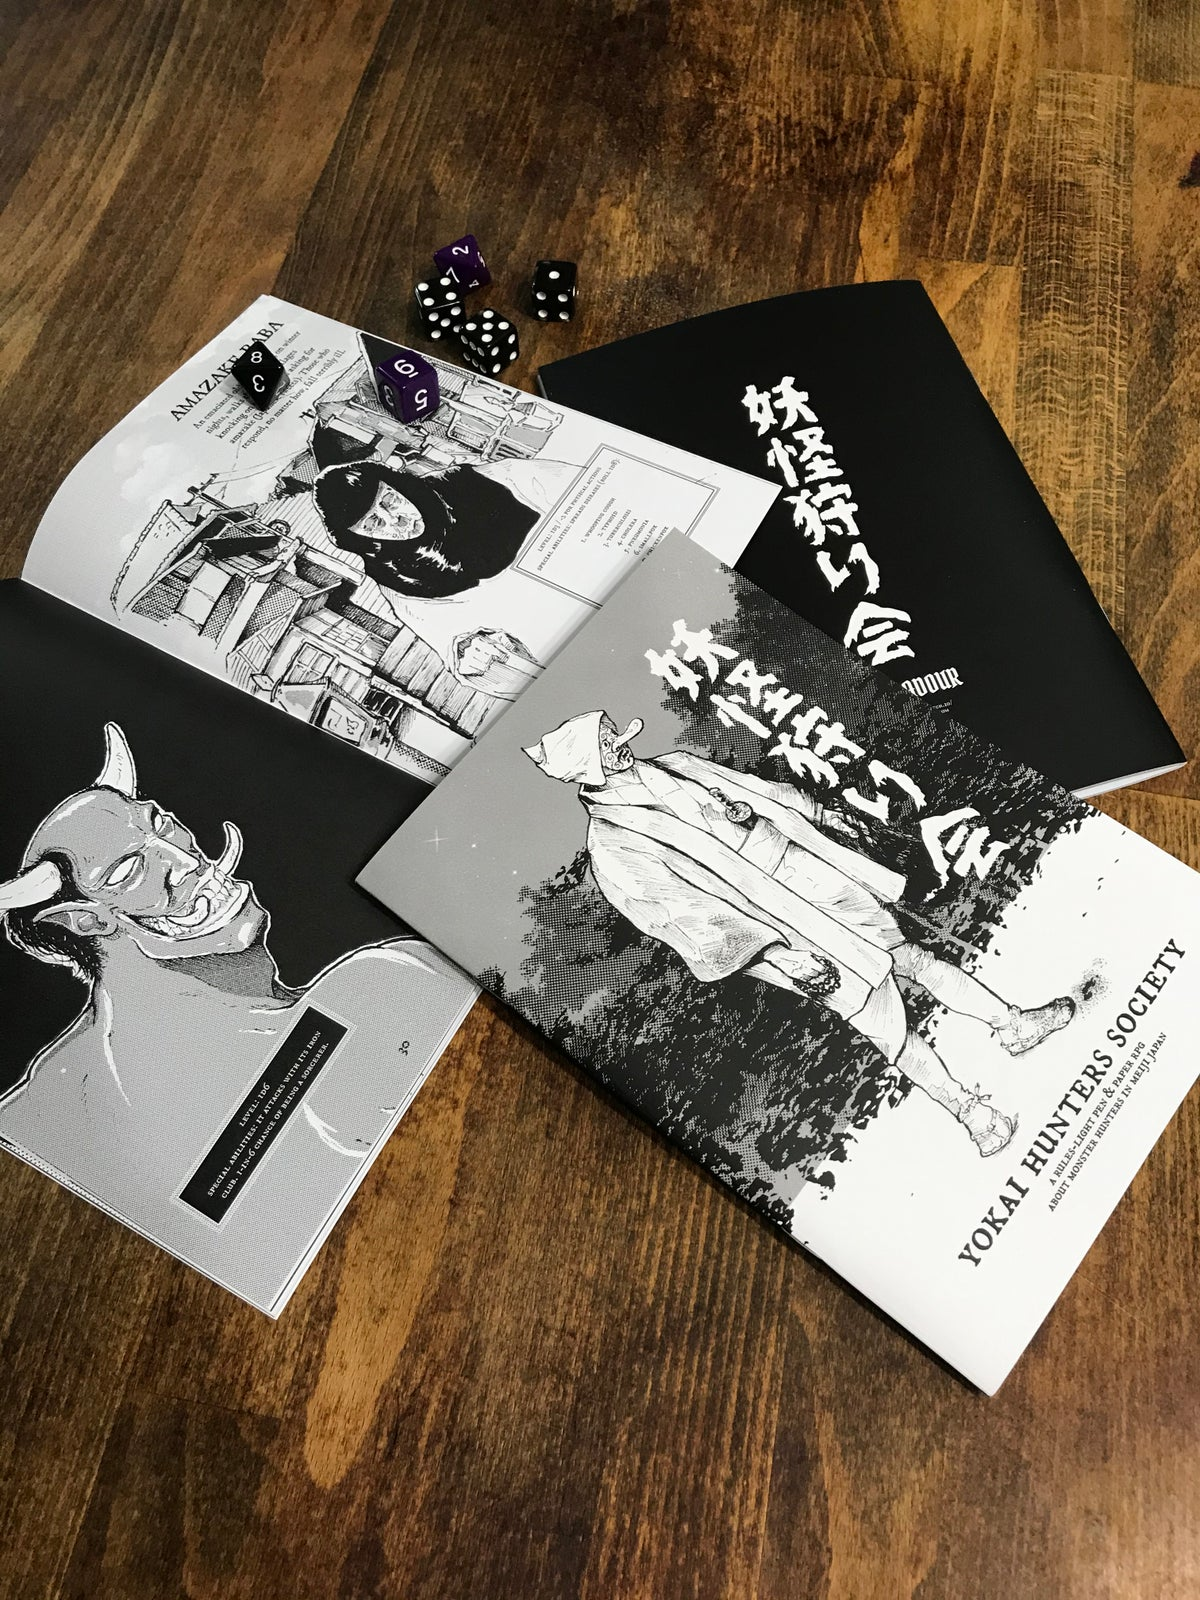 Yokai Hunters Society, a rules-light pen & paper RPG in zine format about Monster Hunting in Meiji Japan. Based on Tunnel Goons by Nate Treme